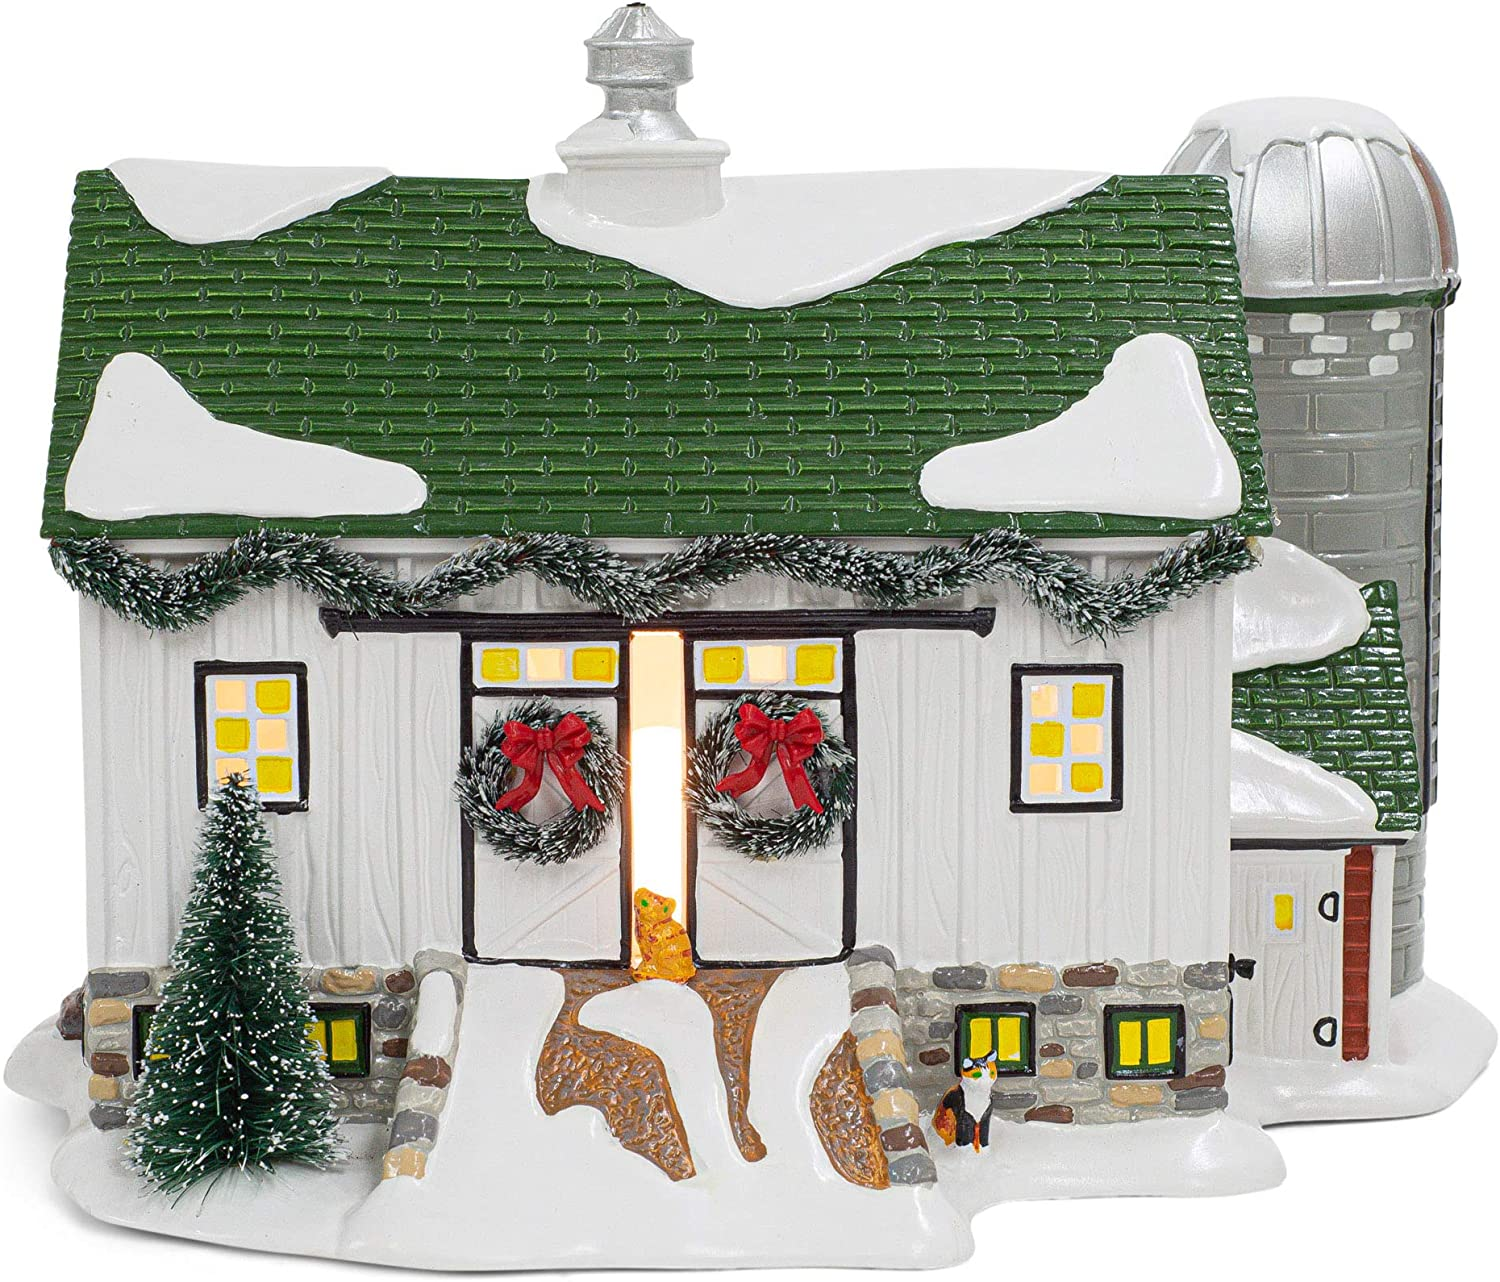 Department 56 Hot Properties Country Living Village Crooked Creek Farm Lighted Building, 7.48 in H